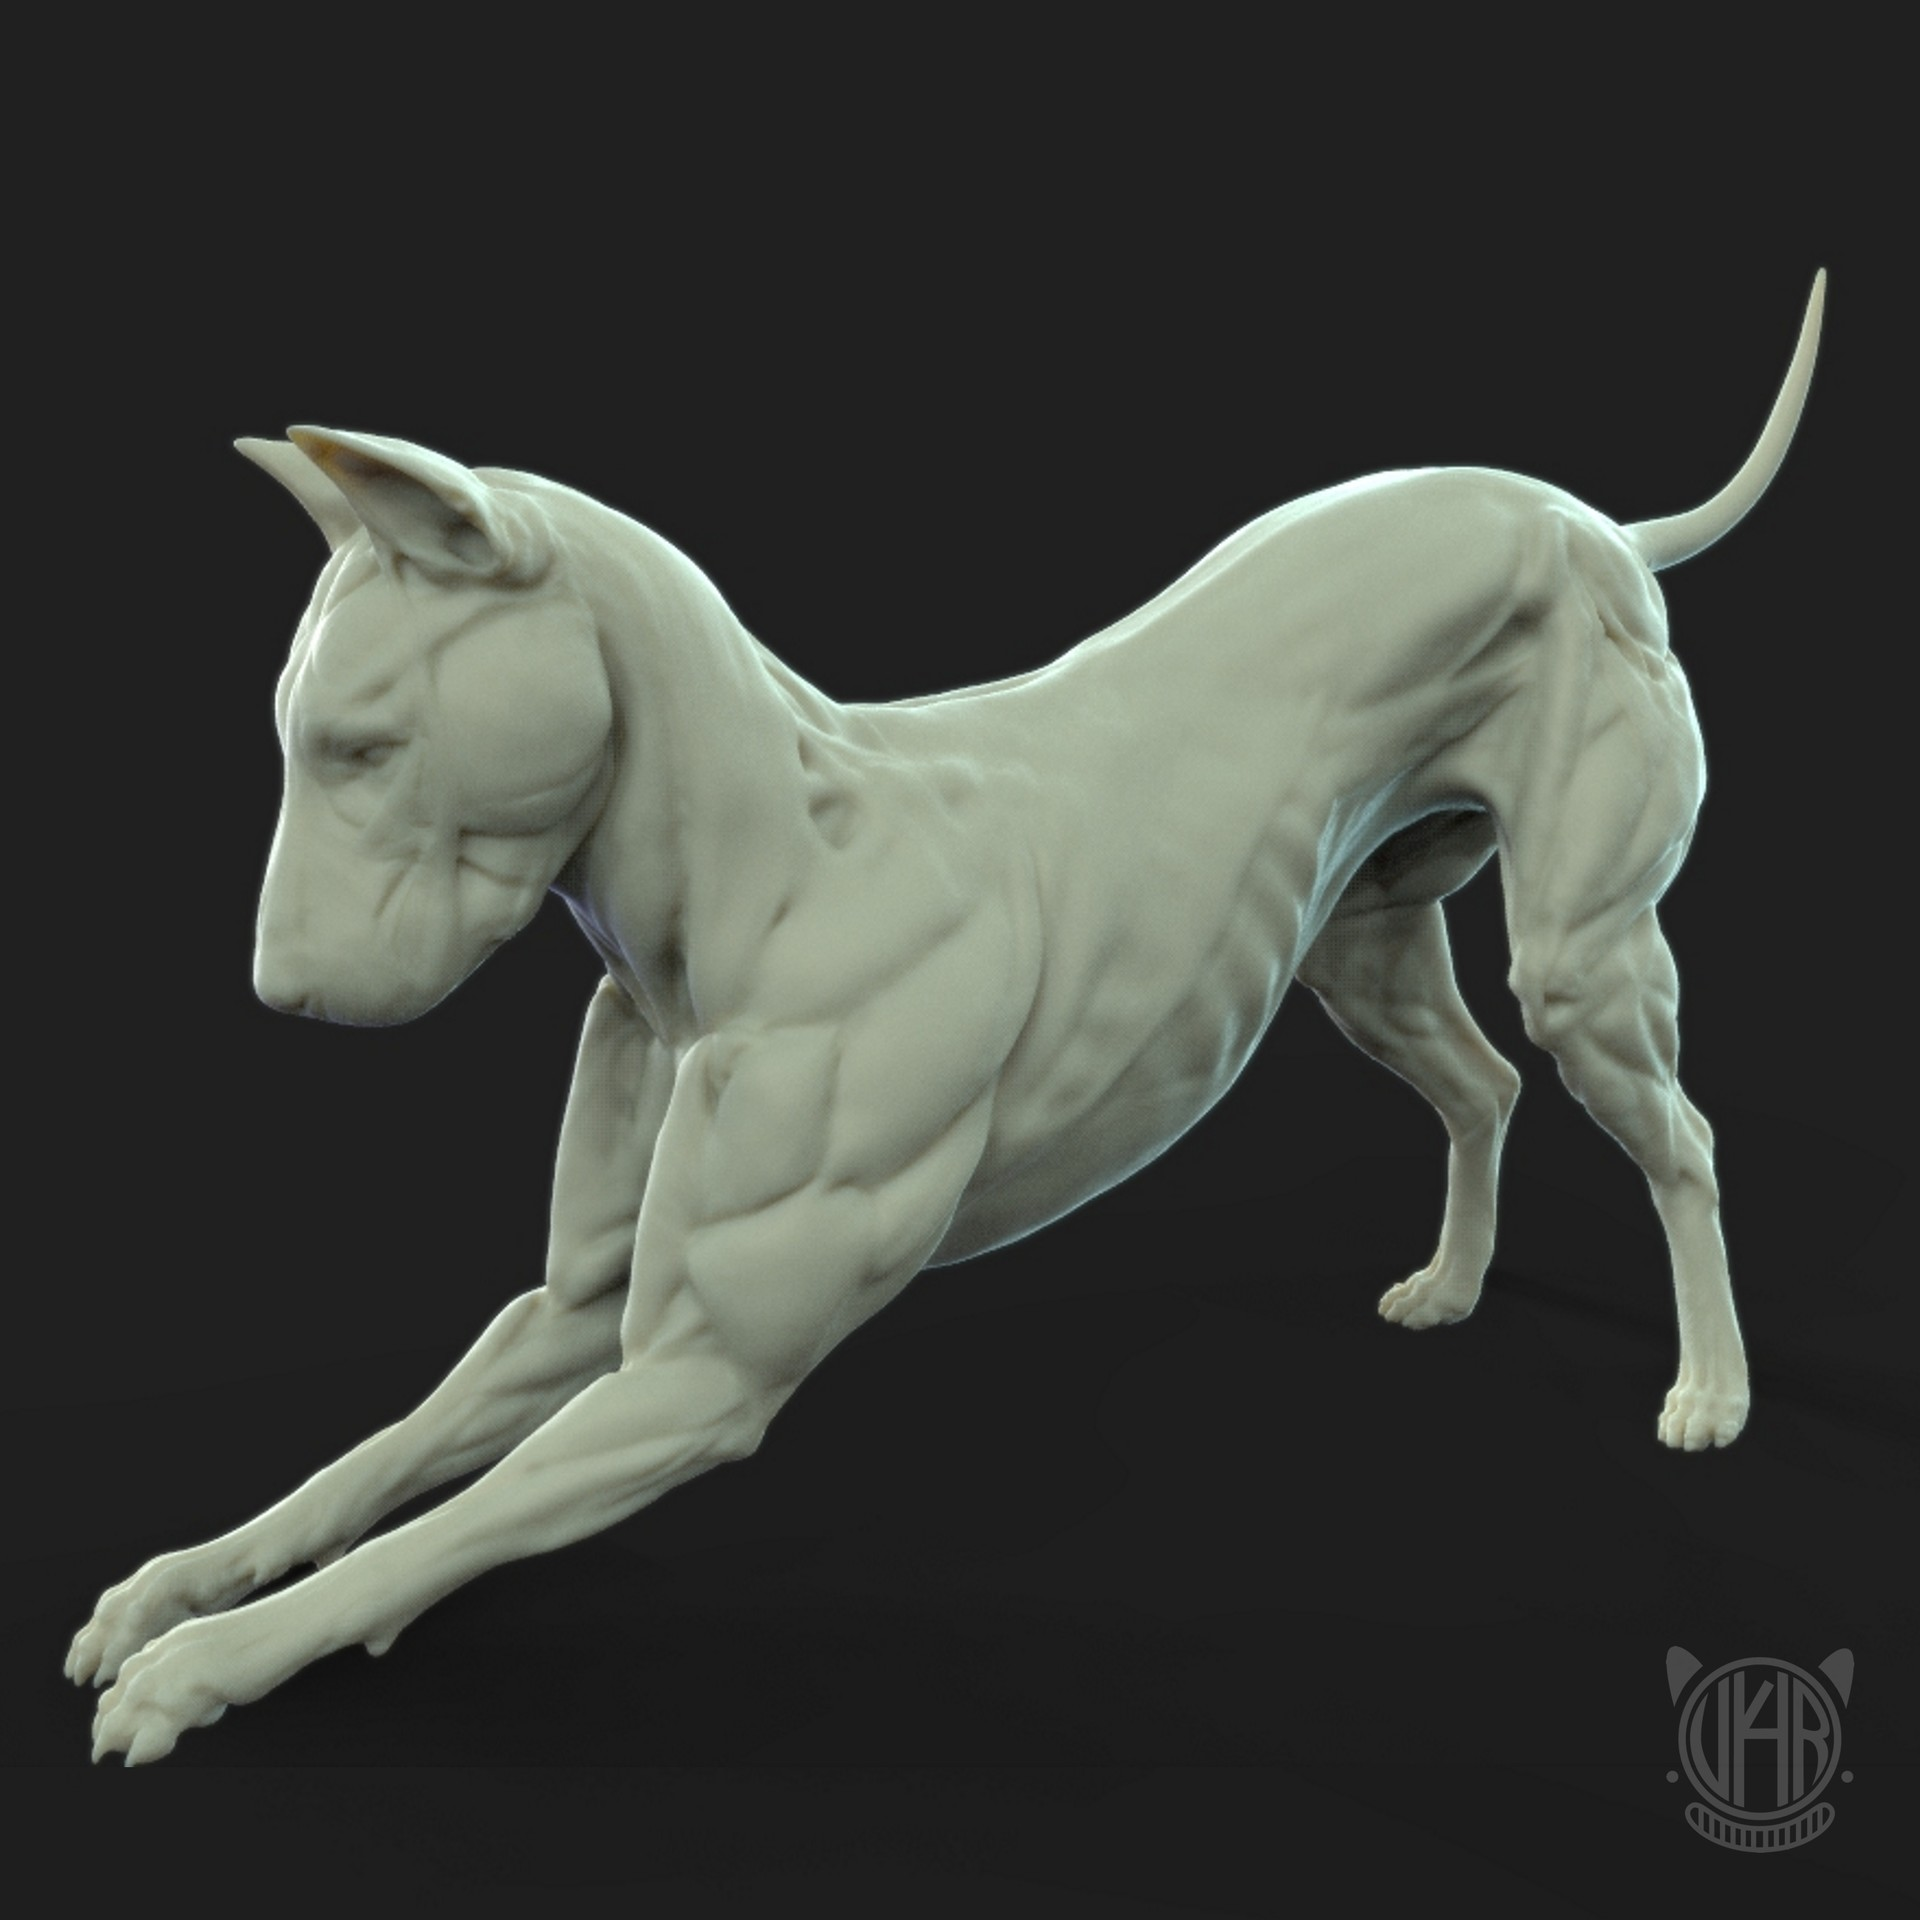 ArtStation - Dog Anatomy Exercise, Yi Hua Real